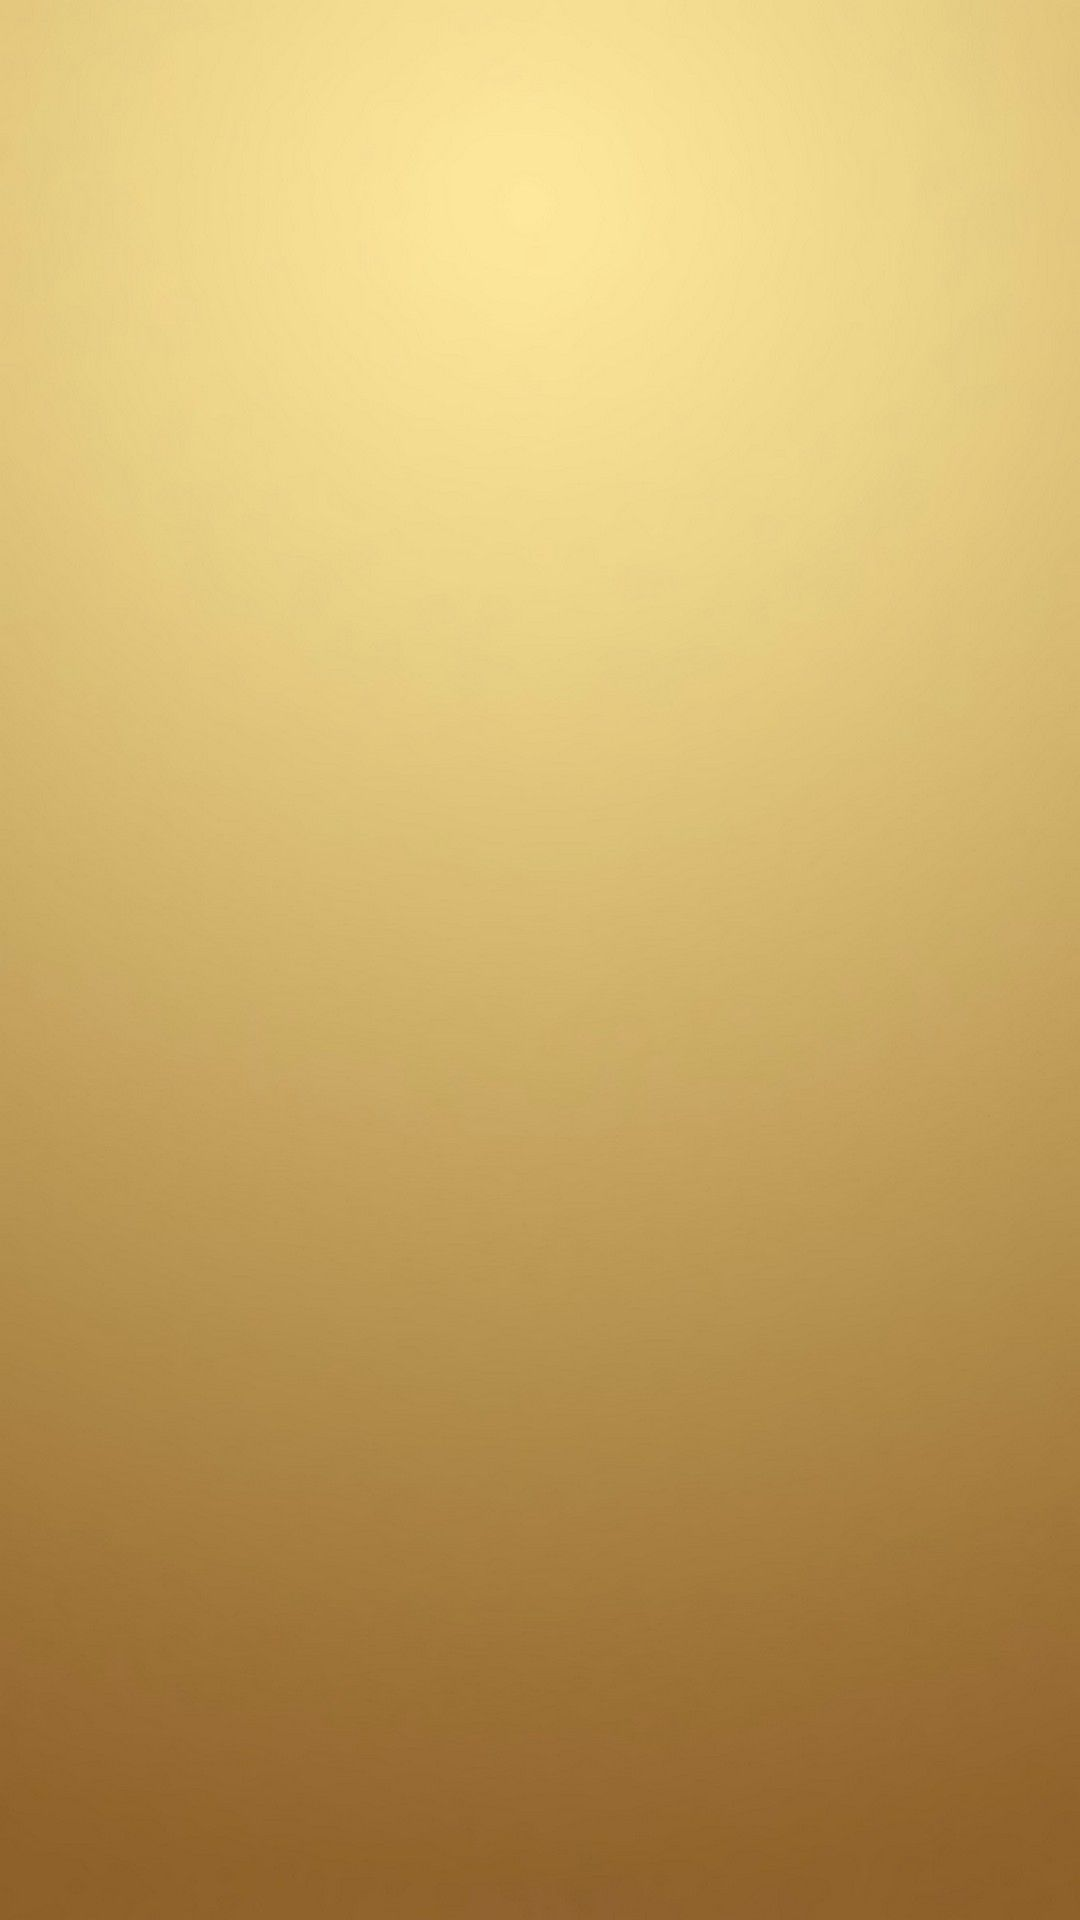 Plain Gold Wallpaper For iPhone   Best iPhone Wallpaper Gold 1080x1920